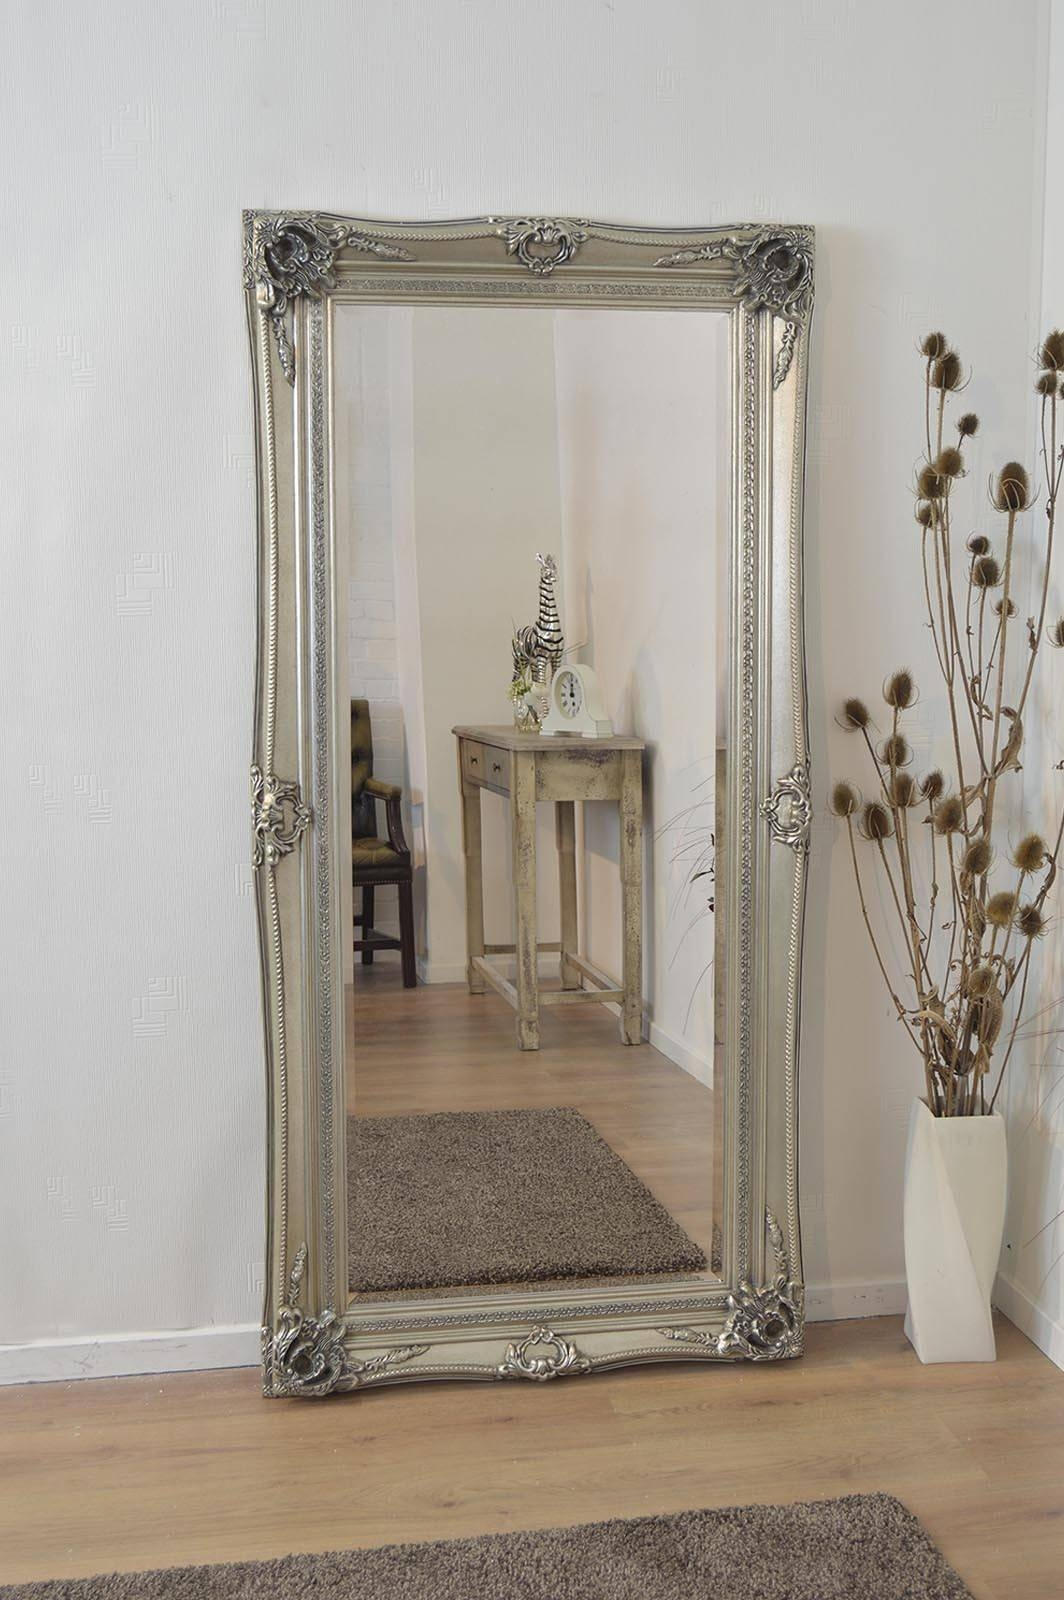 Classic Impression On Antique Wall Mirrors | Vwho Inside Silver Vintage Mirrors (View 6 of 15)